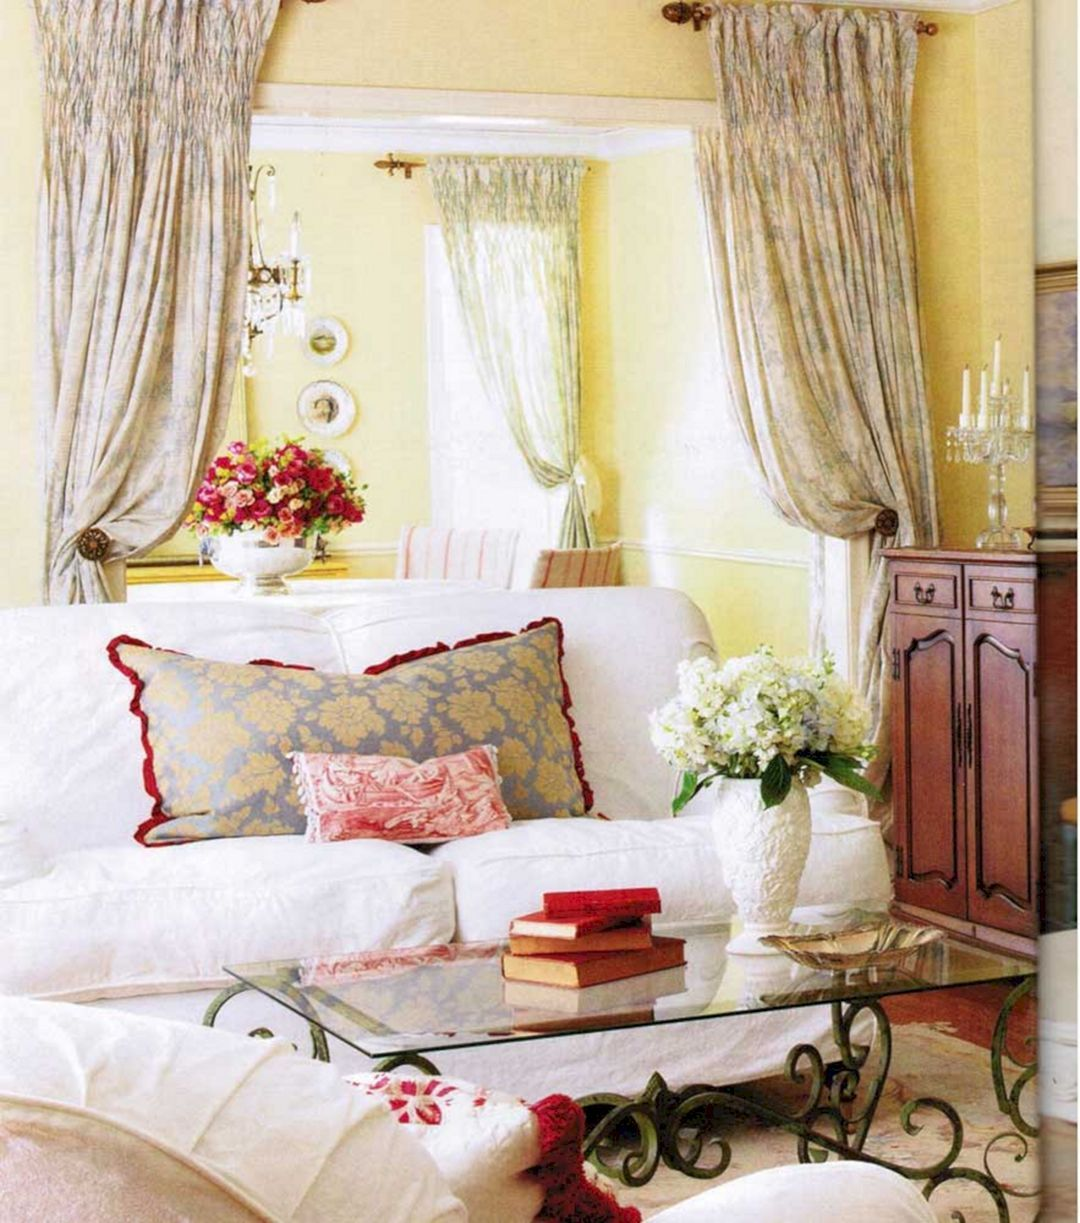 24 DIY French Country Decor Ideas On A Budget | French ...